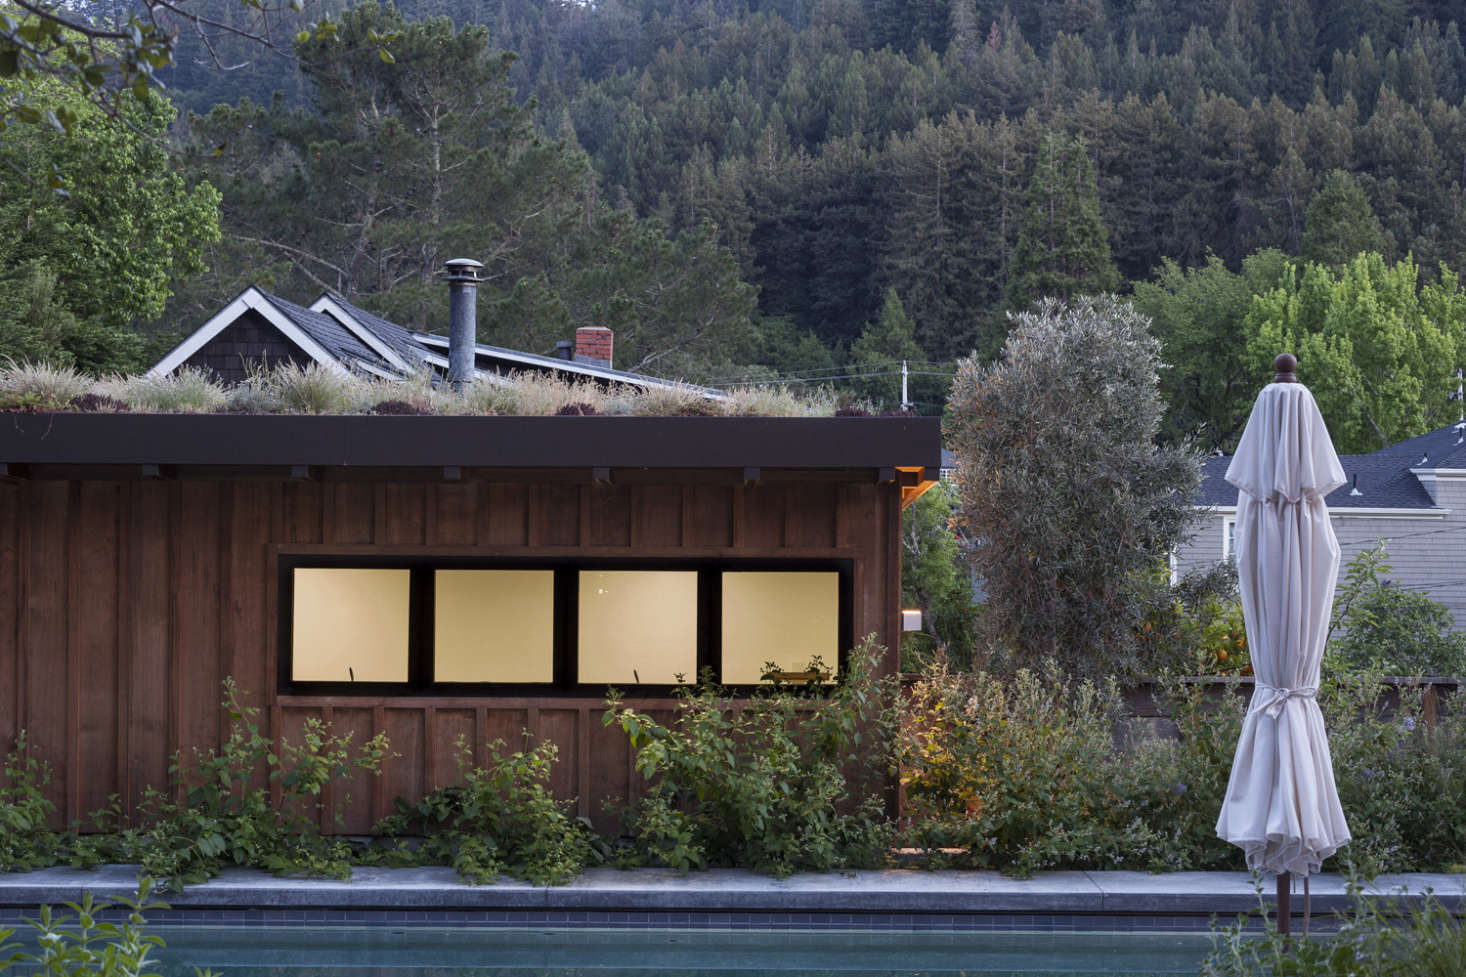 The new garage has stained board-and-batten siding to match the new wing of the house, and is planted with a green roof of drought-tolerant grasses and wildflowers.